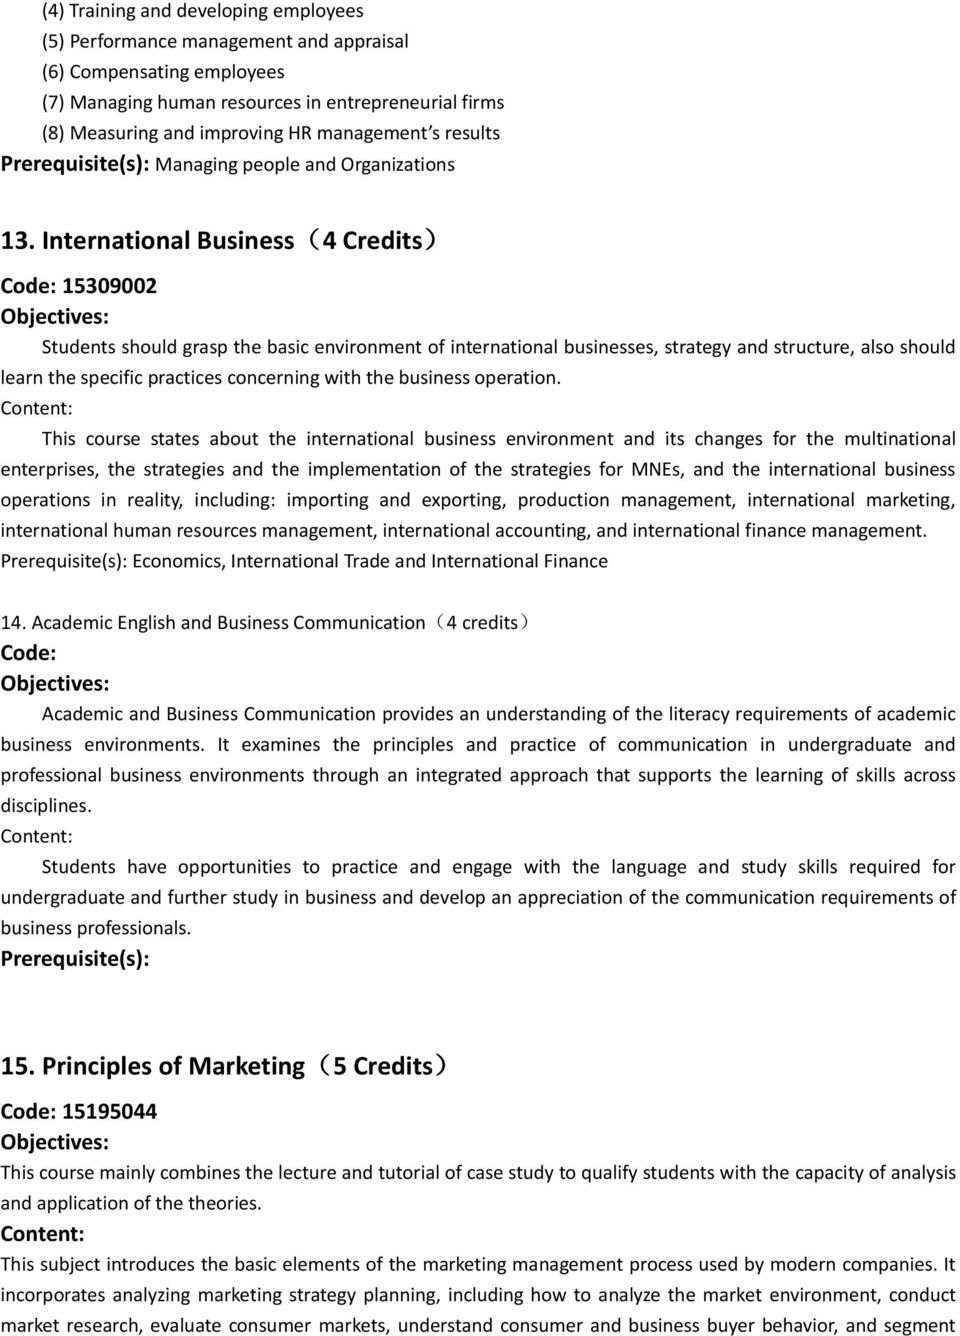 International Business(4 Credits) Code: 15309002 Students should grasp the basic environment of international businesses, strategy and structure, also should learn the specific practices concerning